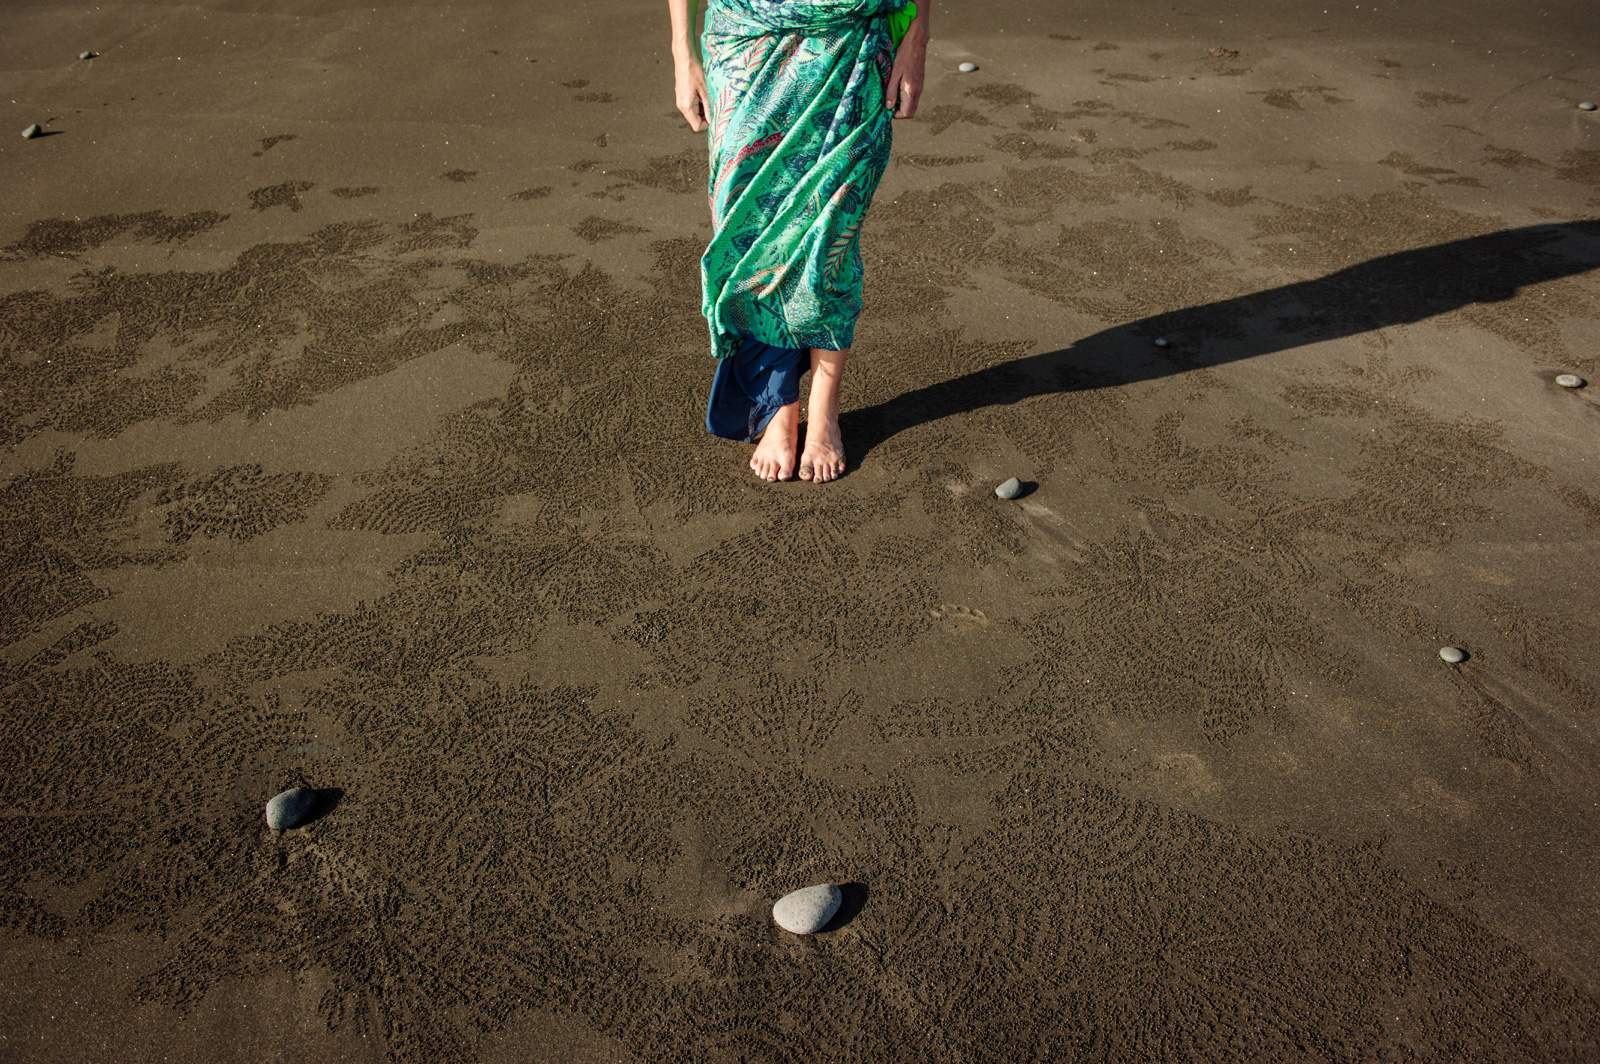 Feet-on-black-beach-sand